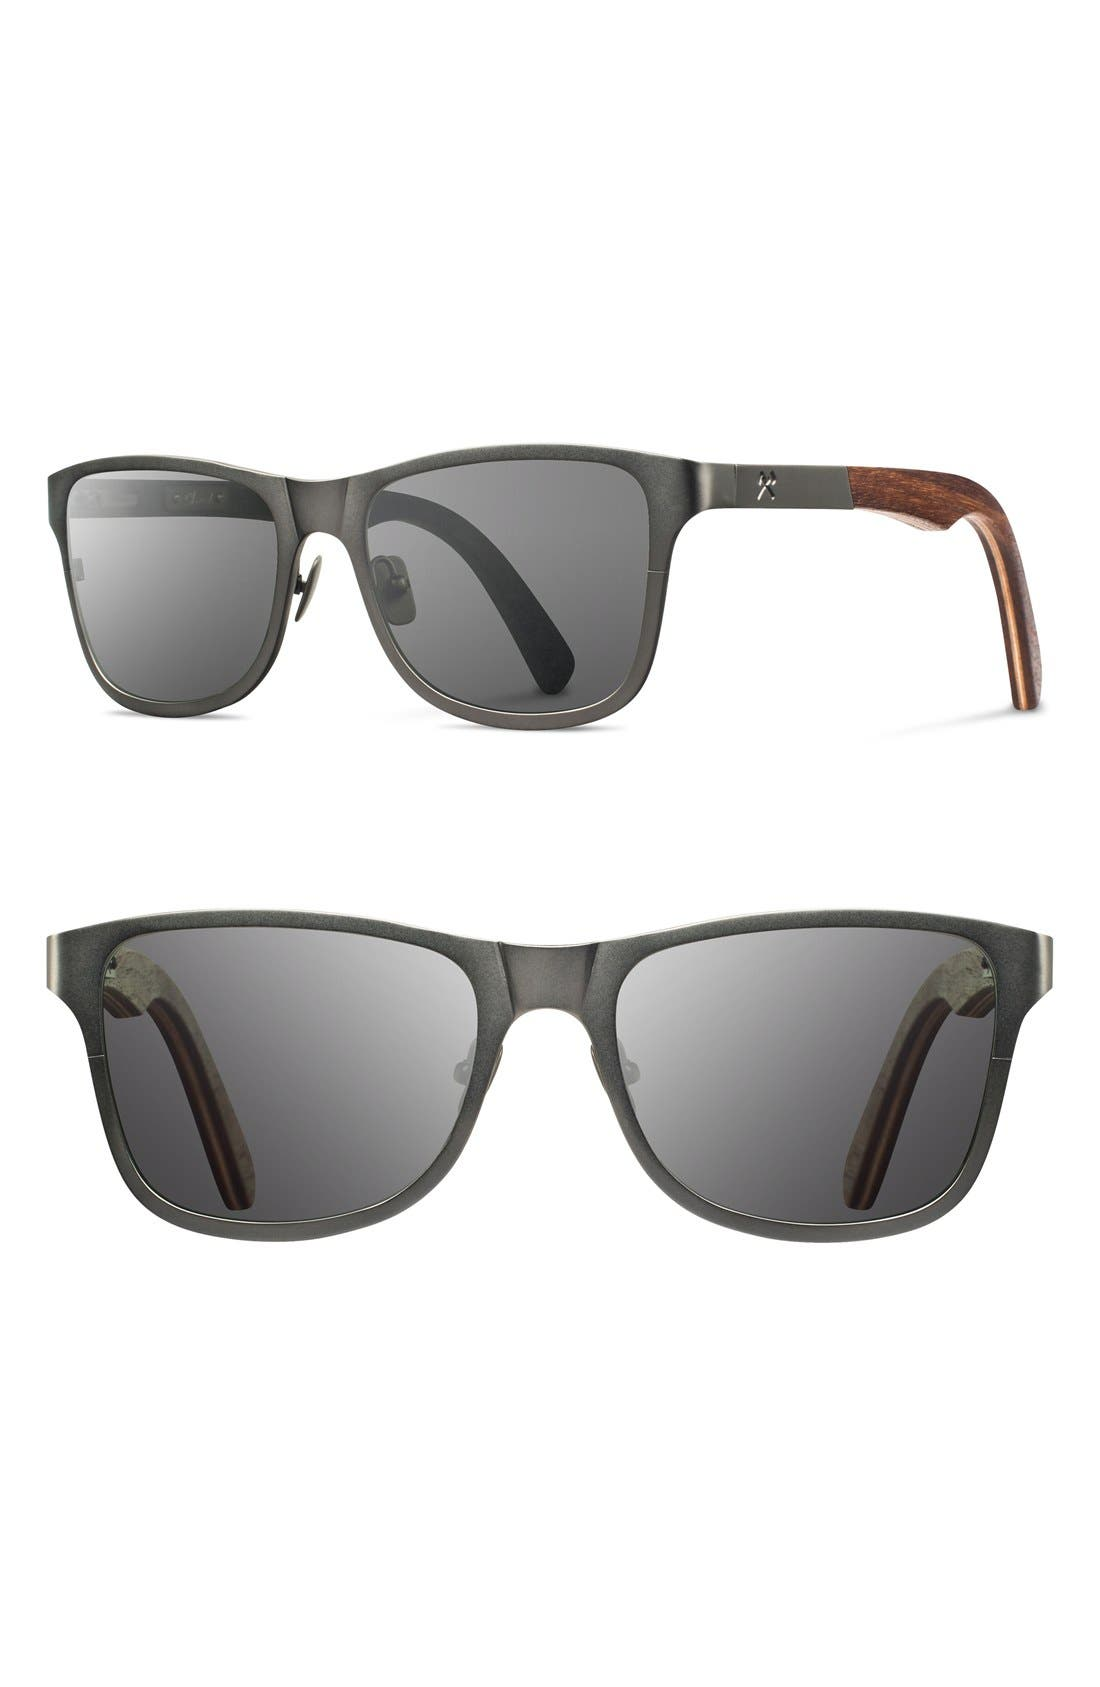 Shwood 'Canby' 54mm Titanium & Wood Sunglasses